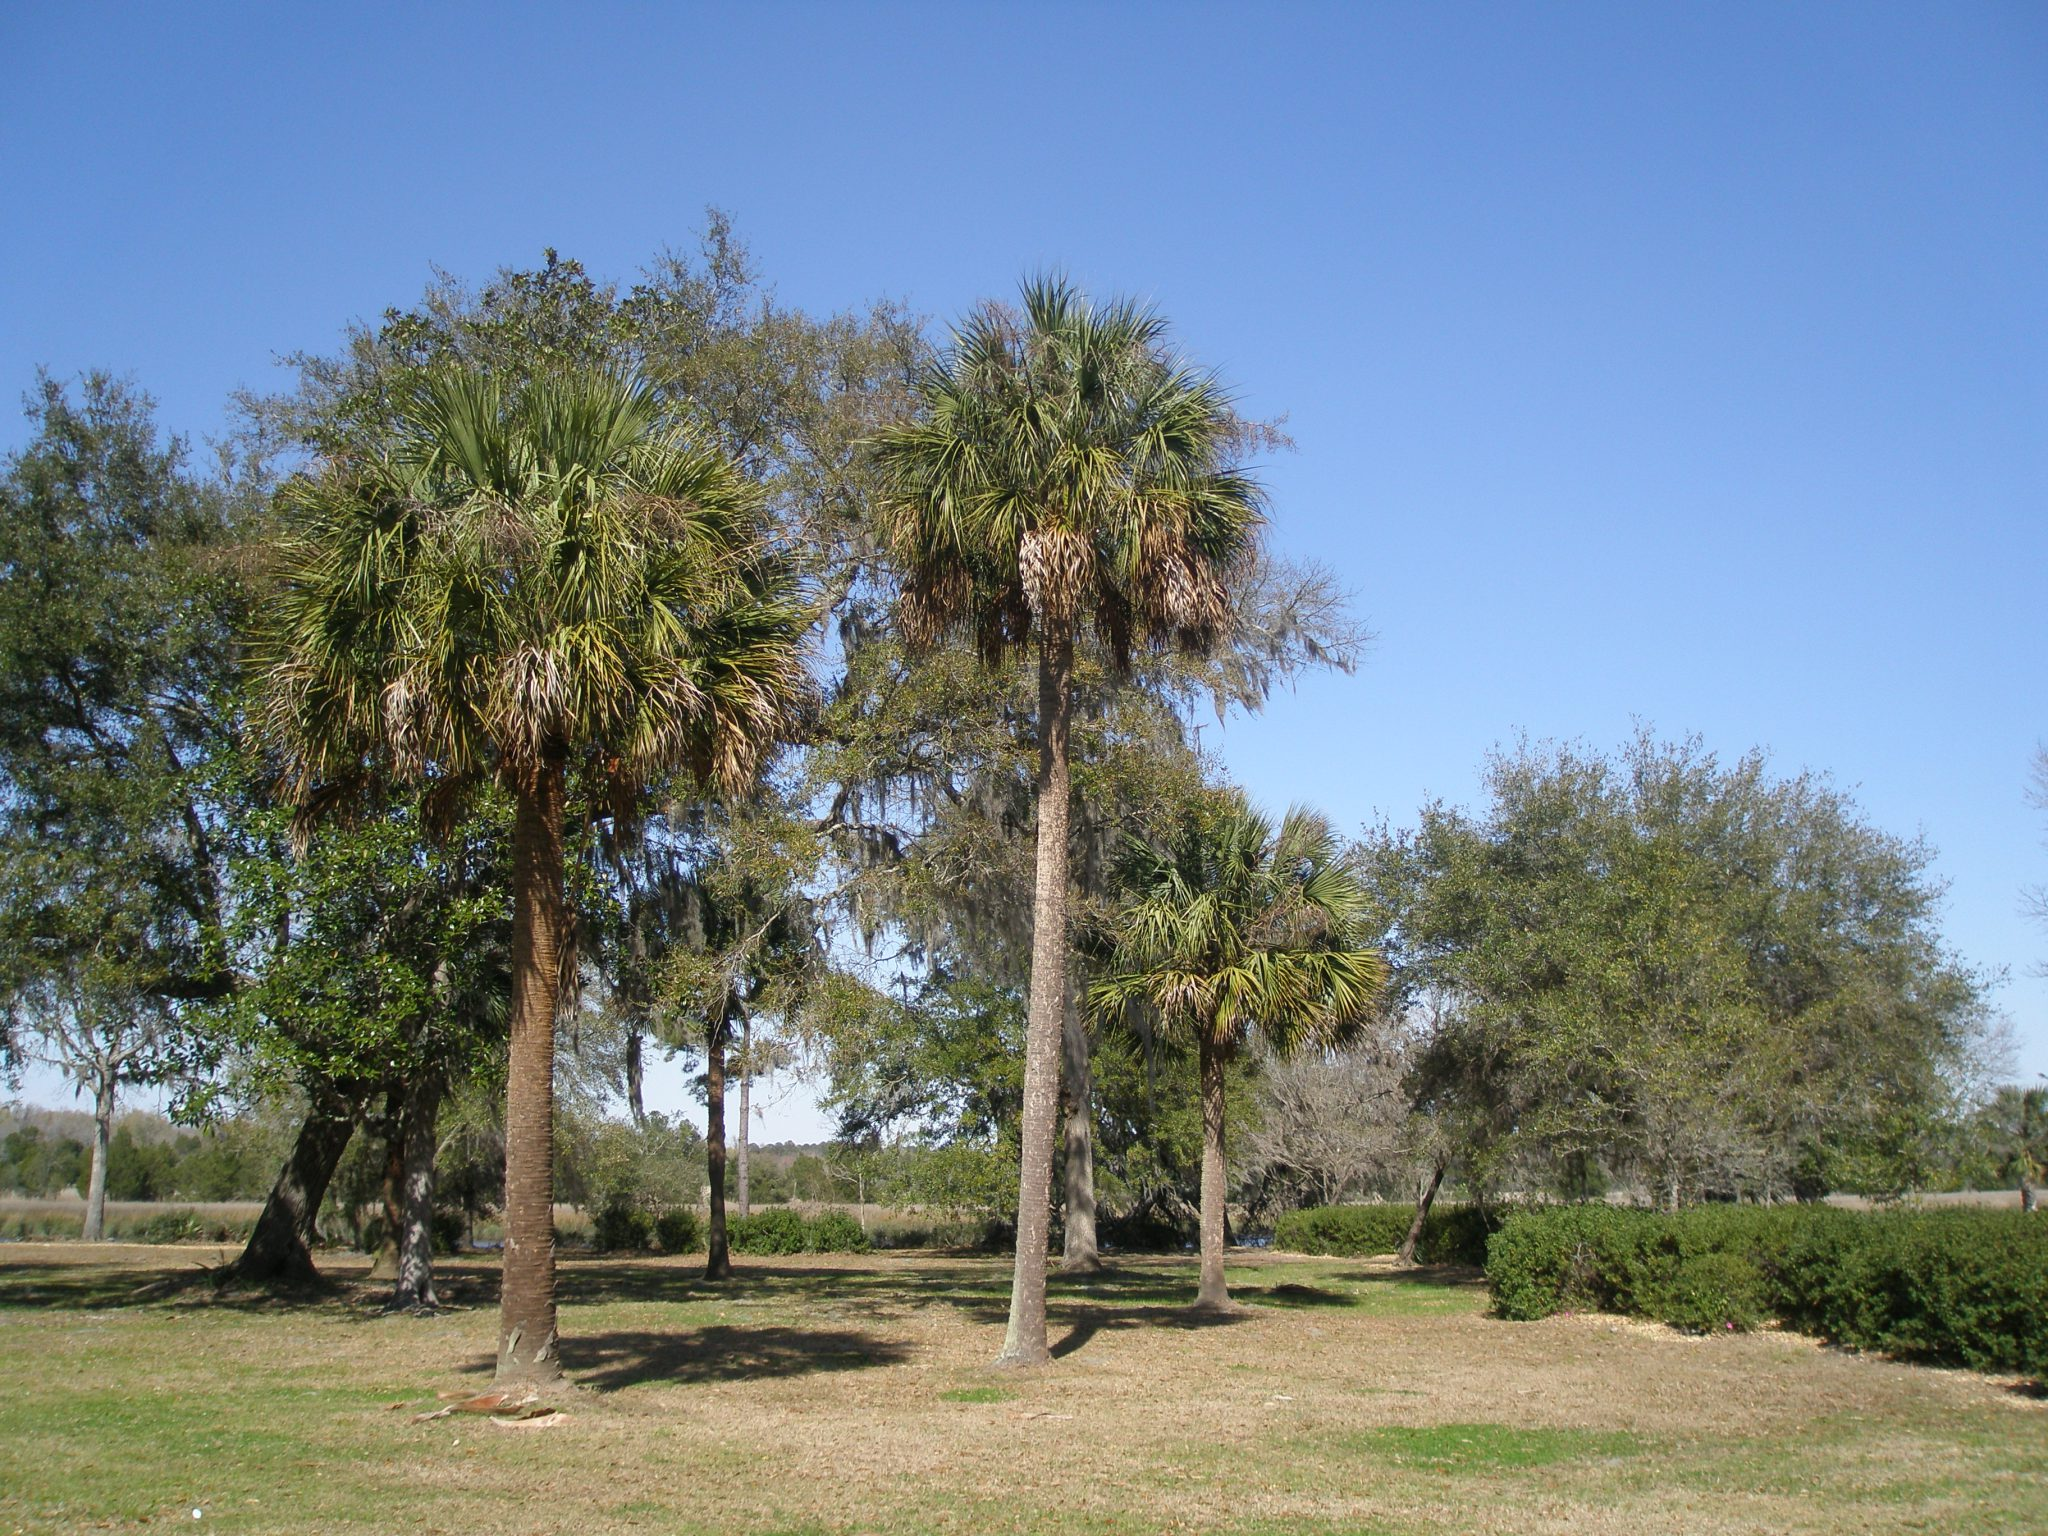 Palm-studded Grounds, as we approached the Ashley River